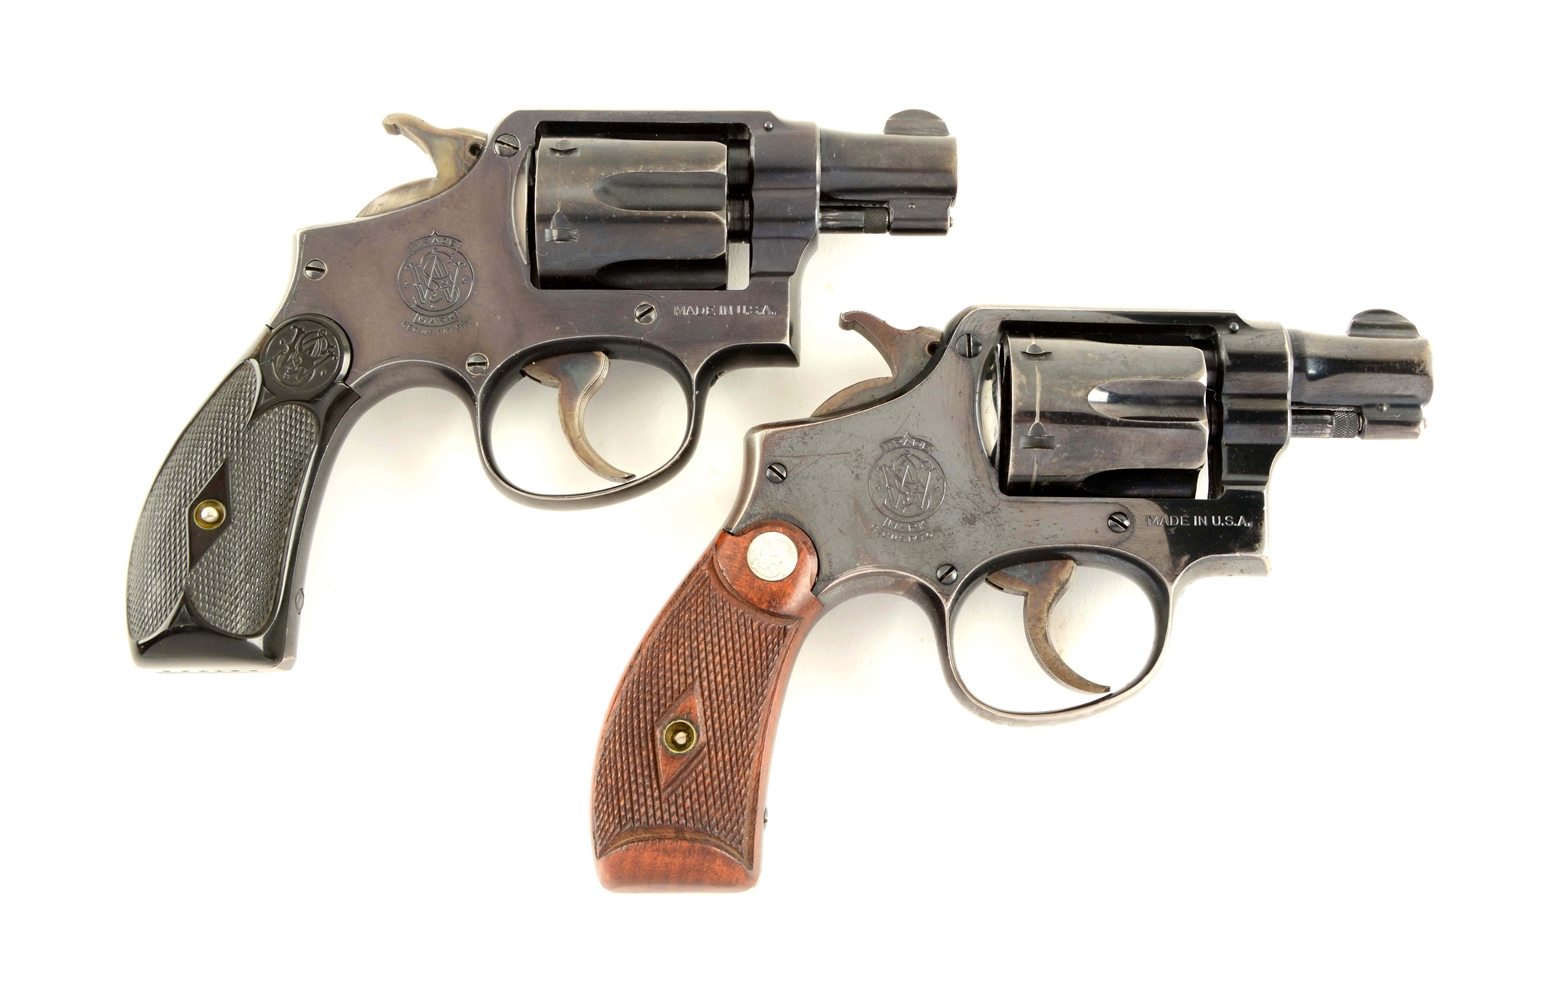 "(C) Lot of 2: Historic Consecutively Numbered S&W Hand Ejector Model M&P 2"" DA Revolvers."